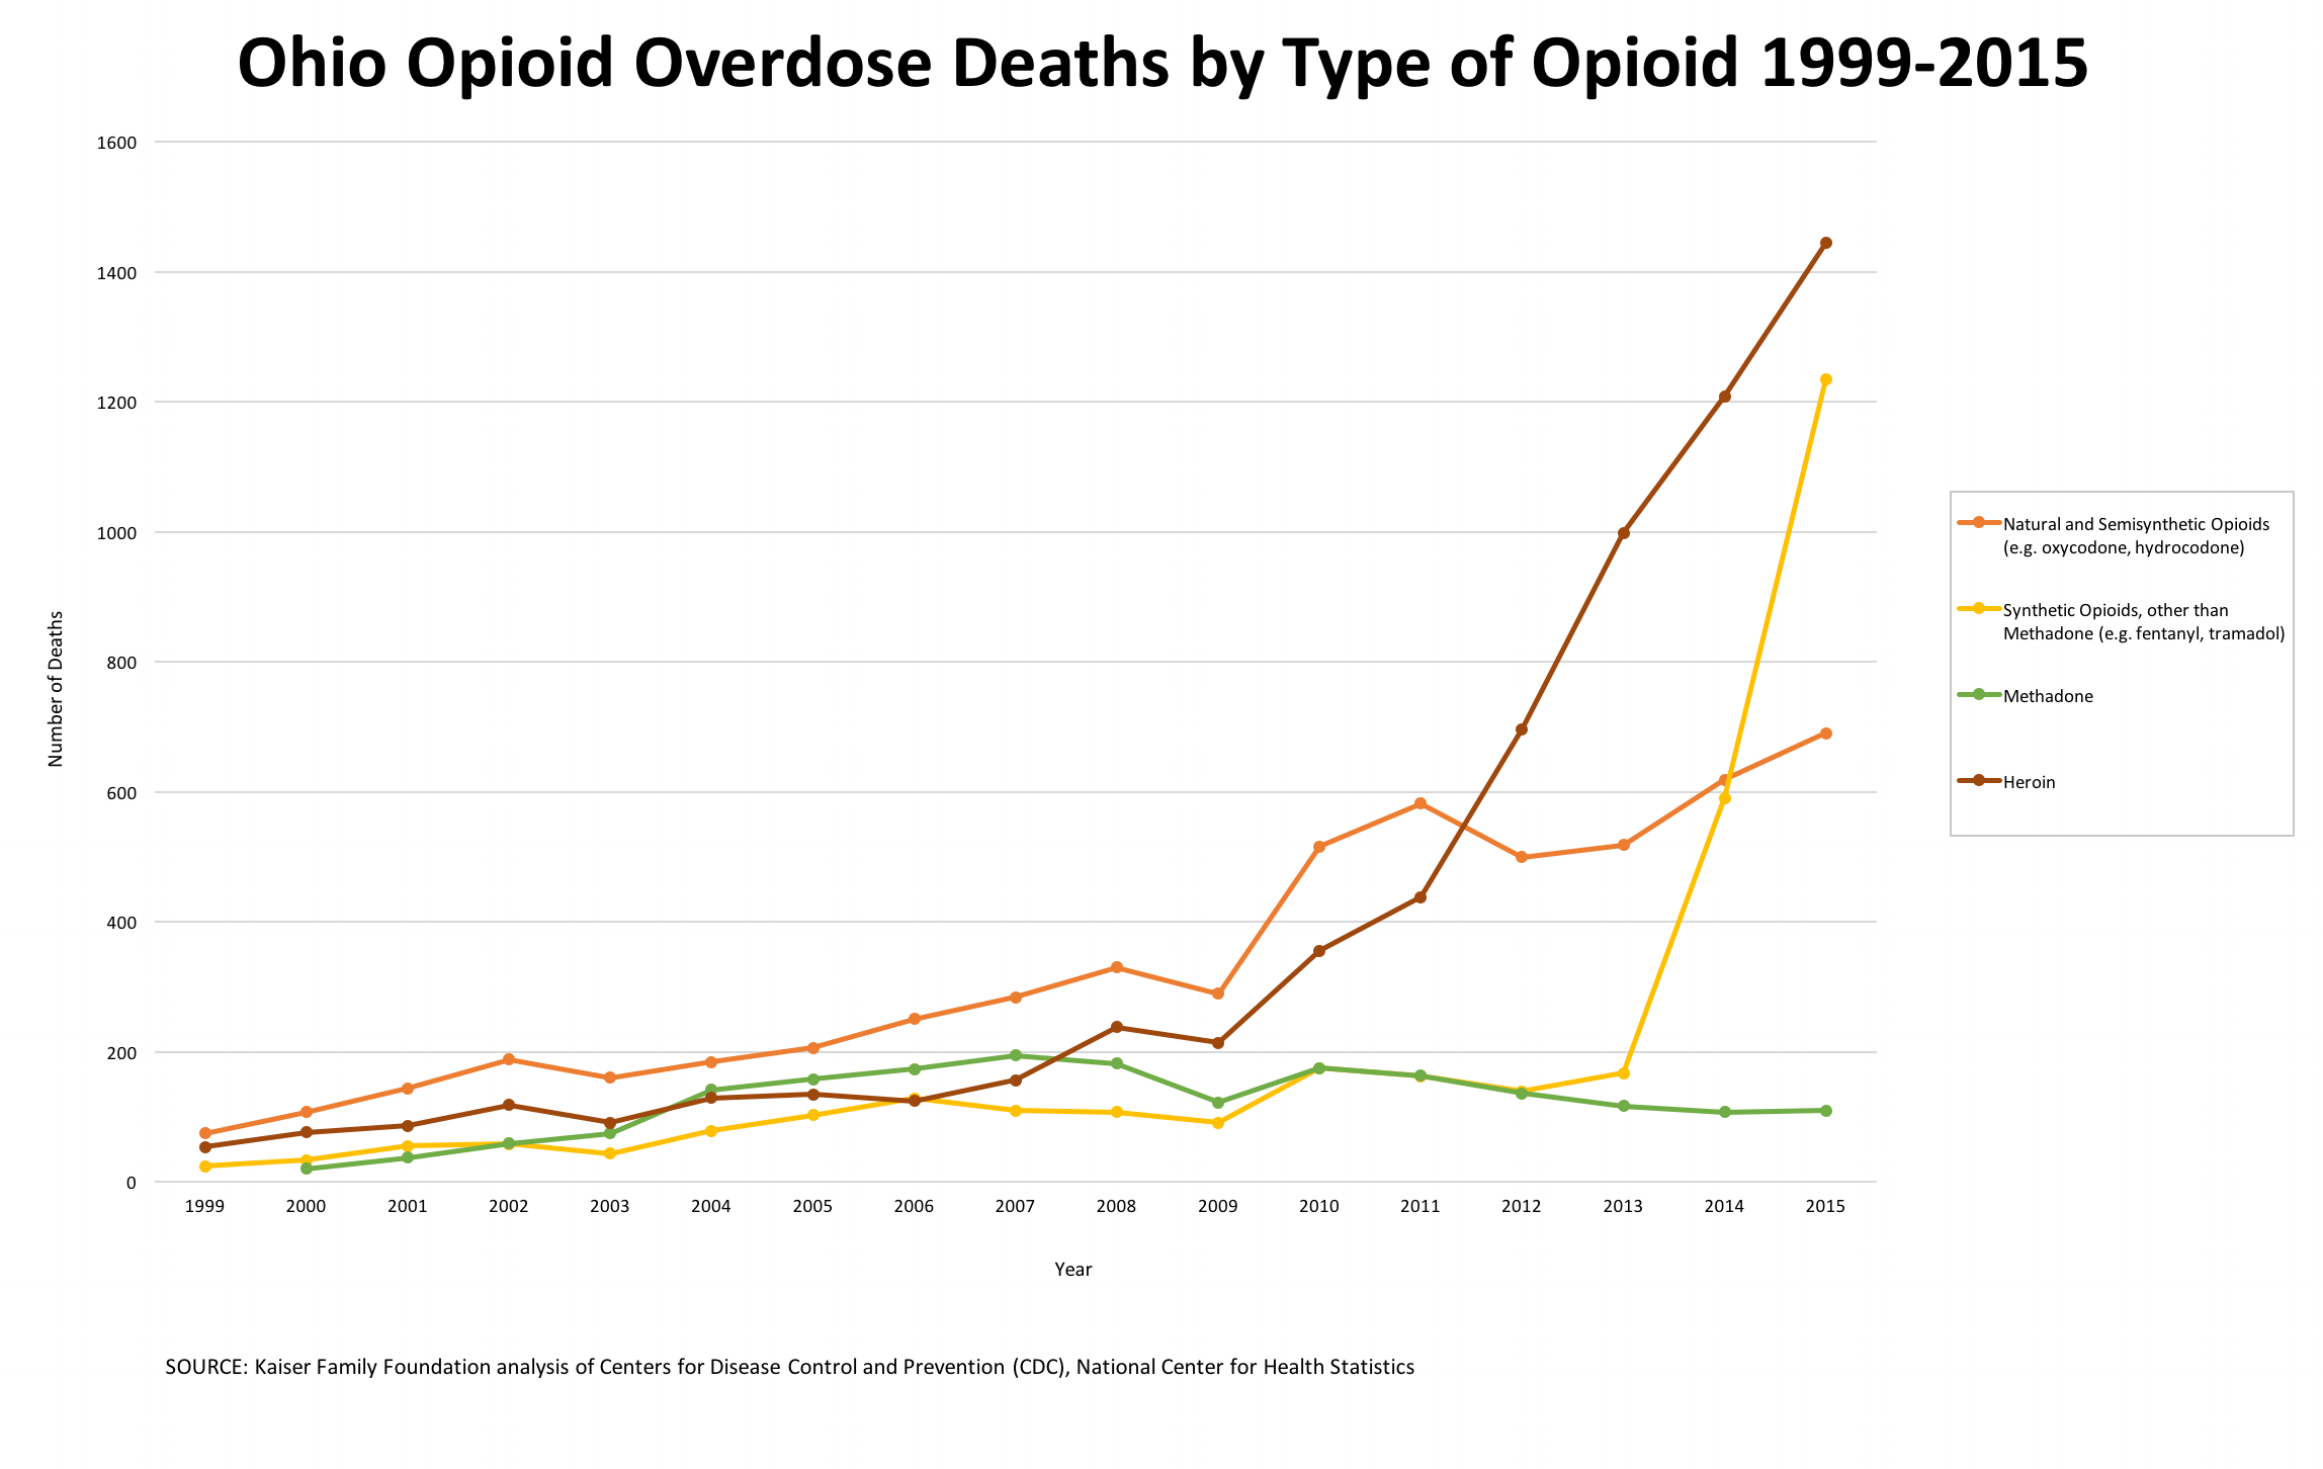 Opioid-related overdose deaths in Ohio have spiked dramatically in the past few years.